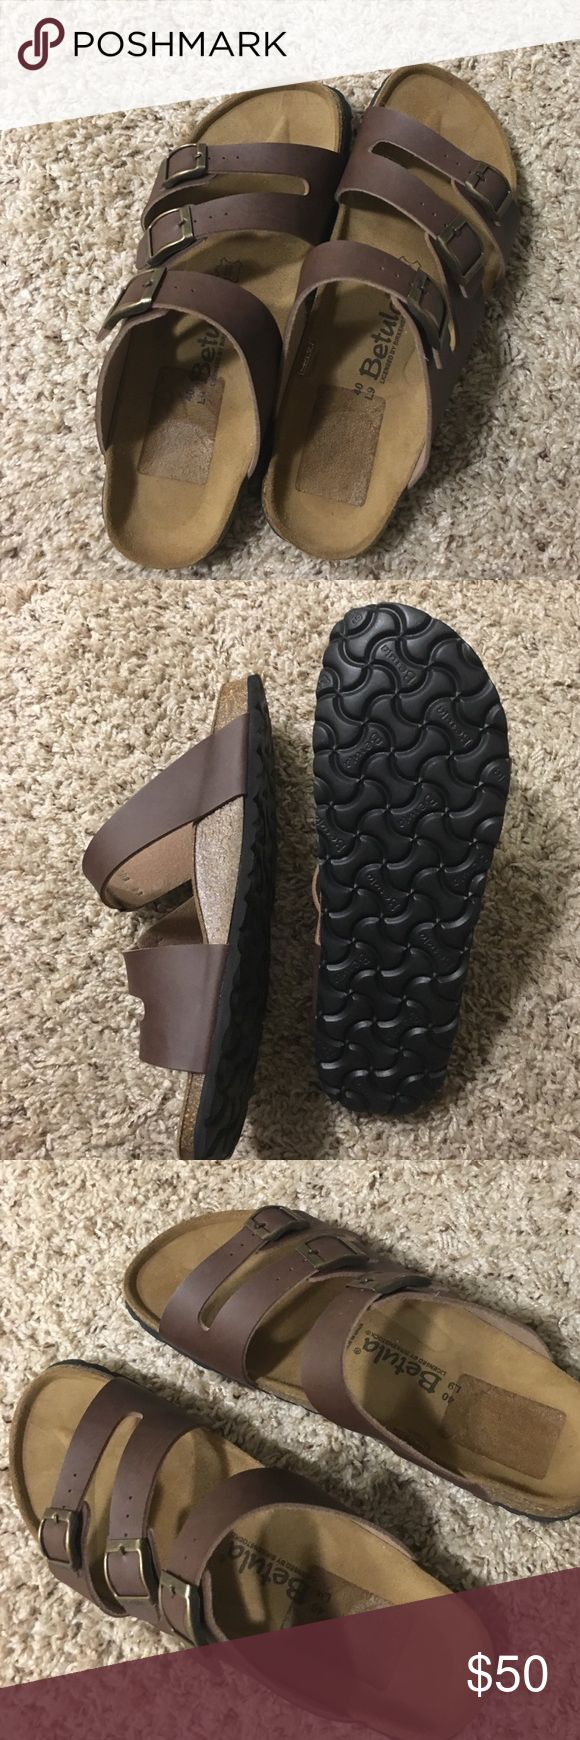 Birkenstock/Betula Sandals- Brand new! Brand new! In perfect condition- only marking is the outline of the price tag on the footbed of the sandals. Birkenstock Shoes Sandals